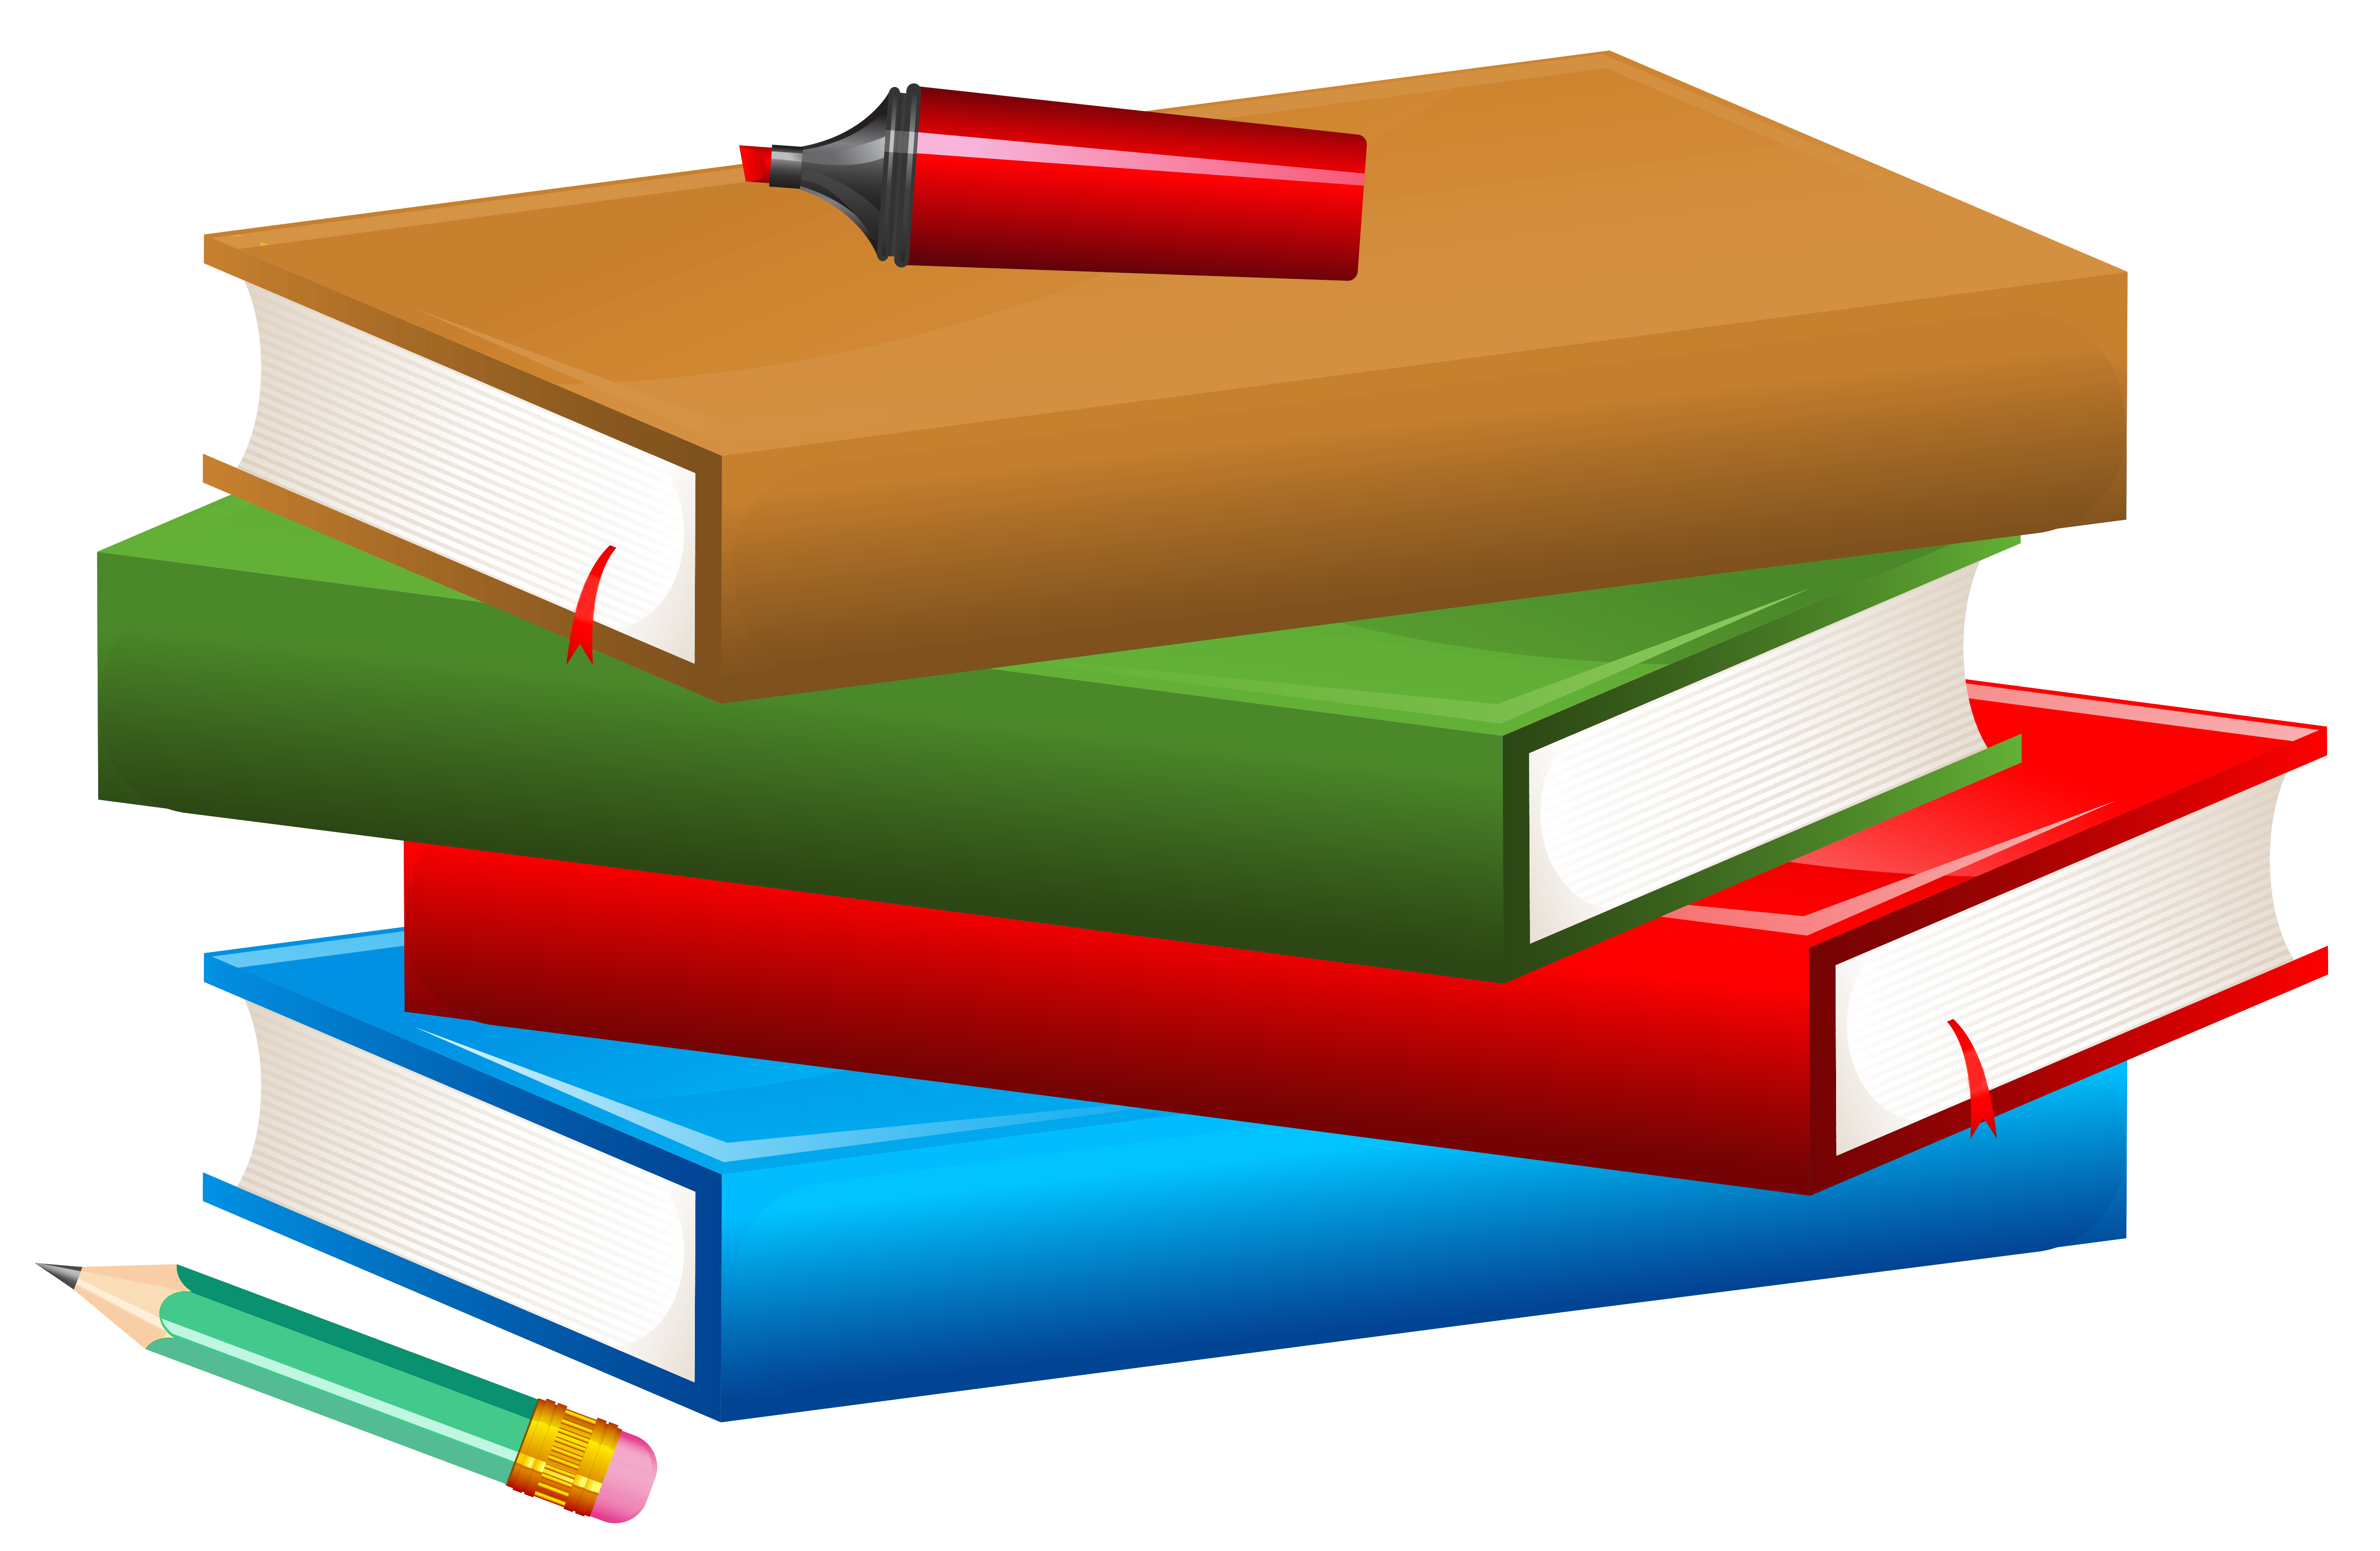 Pencils clipart education. Books with pencil and